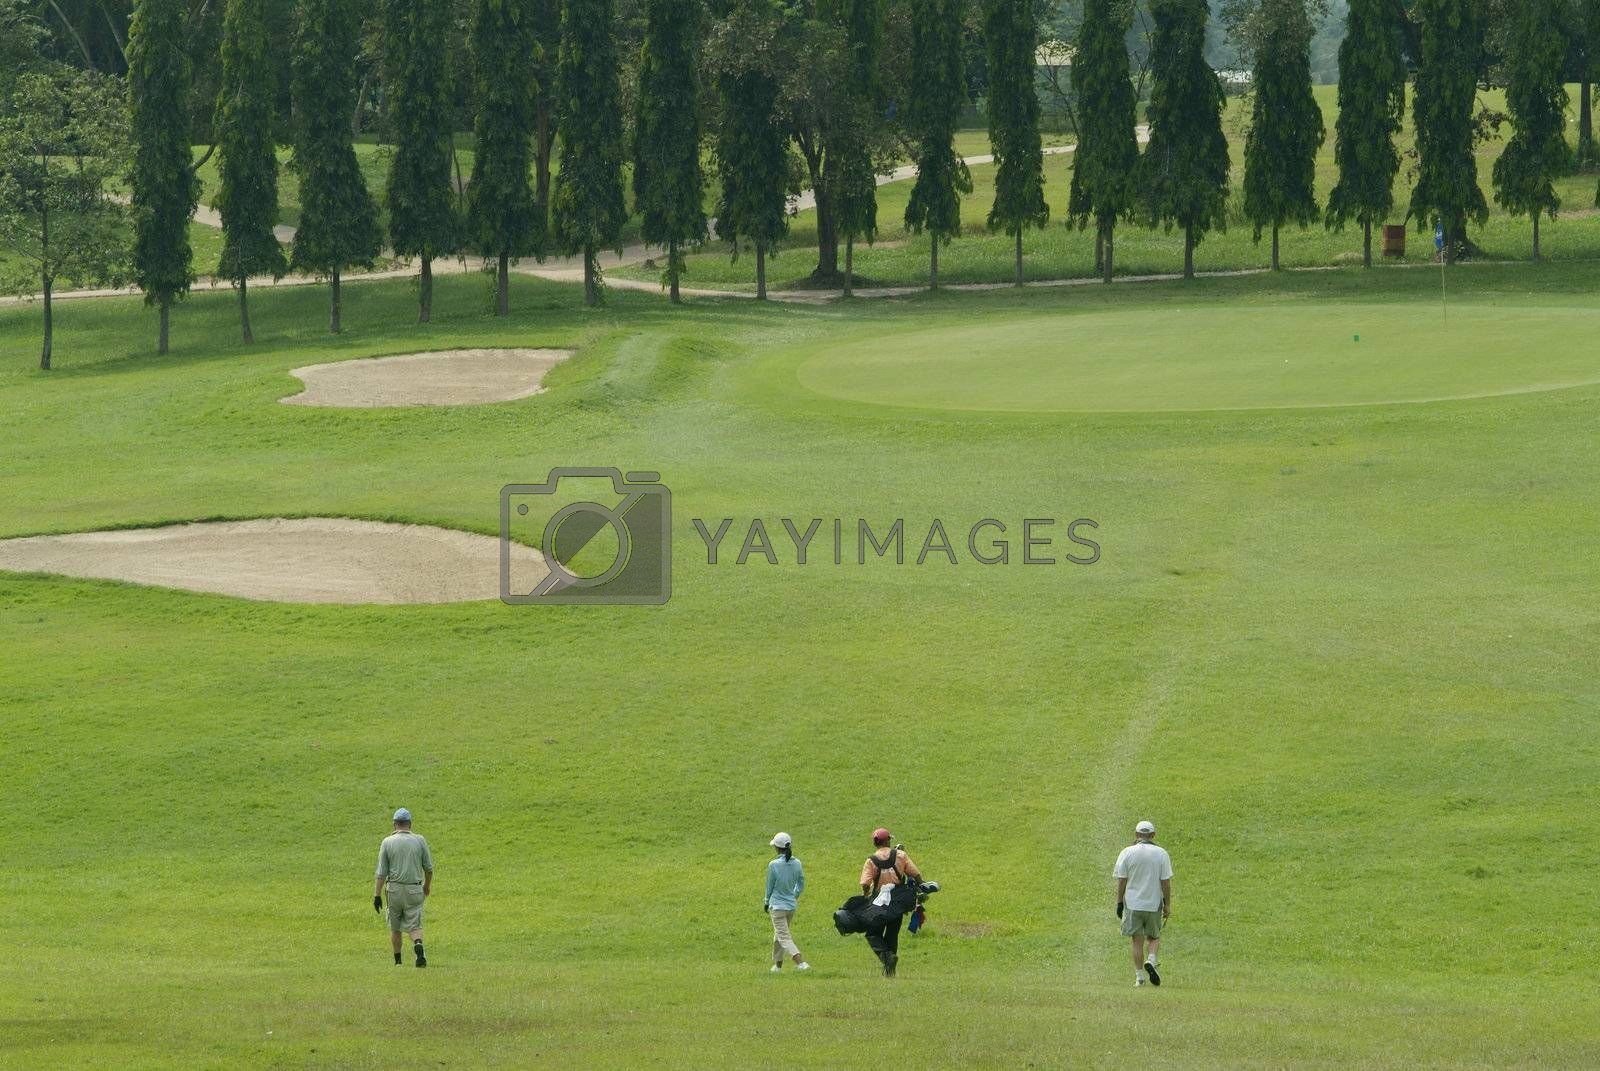 Golf players walking towards the green by epixx